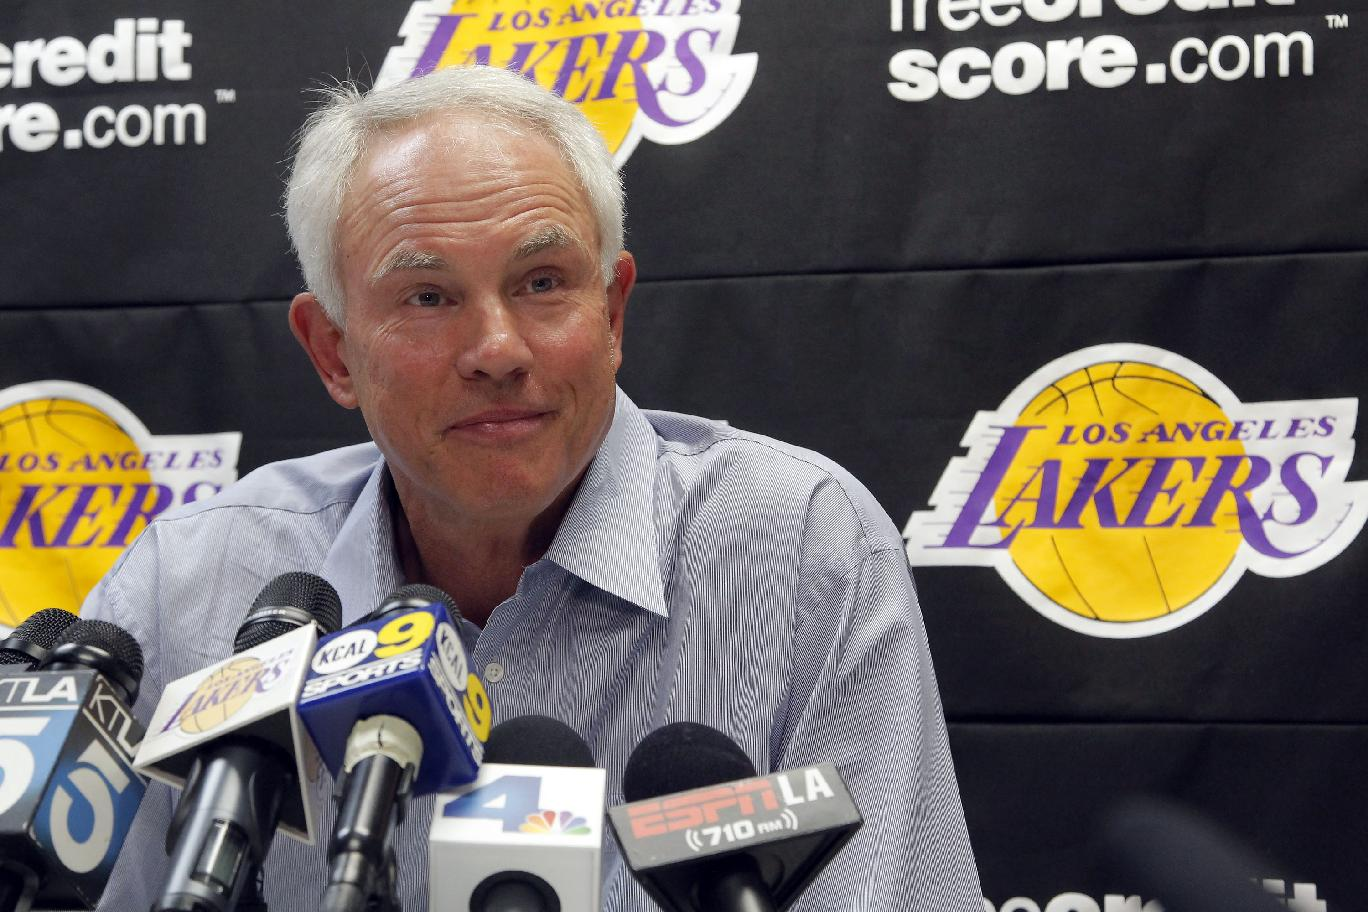 Mitch Kupchak, Los Angeles Lakers general manager, speaks to reporers about the upcoming season, Wednesday Sept. 25, 2013, in El Segundo, Calif. Kupchak says Kobe Bryant was at the NBA basketball team's training complex almost every morning this summer, working aggressively to return from surgery on his torn left Achilles' tendon